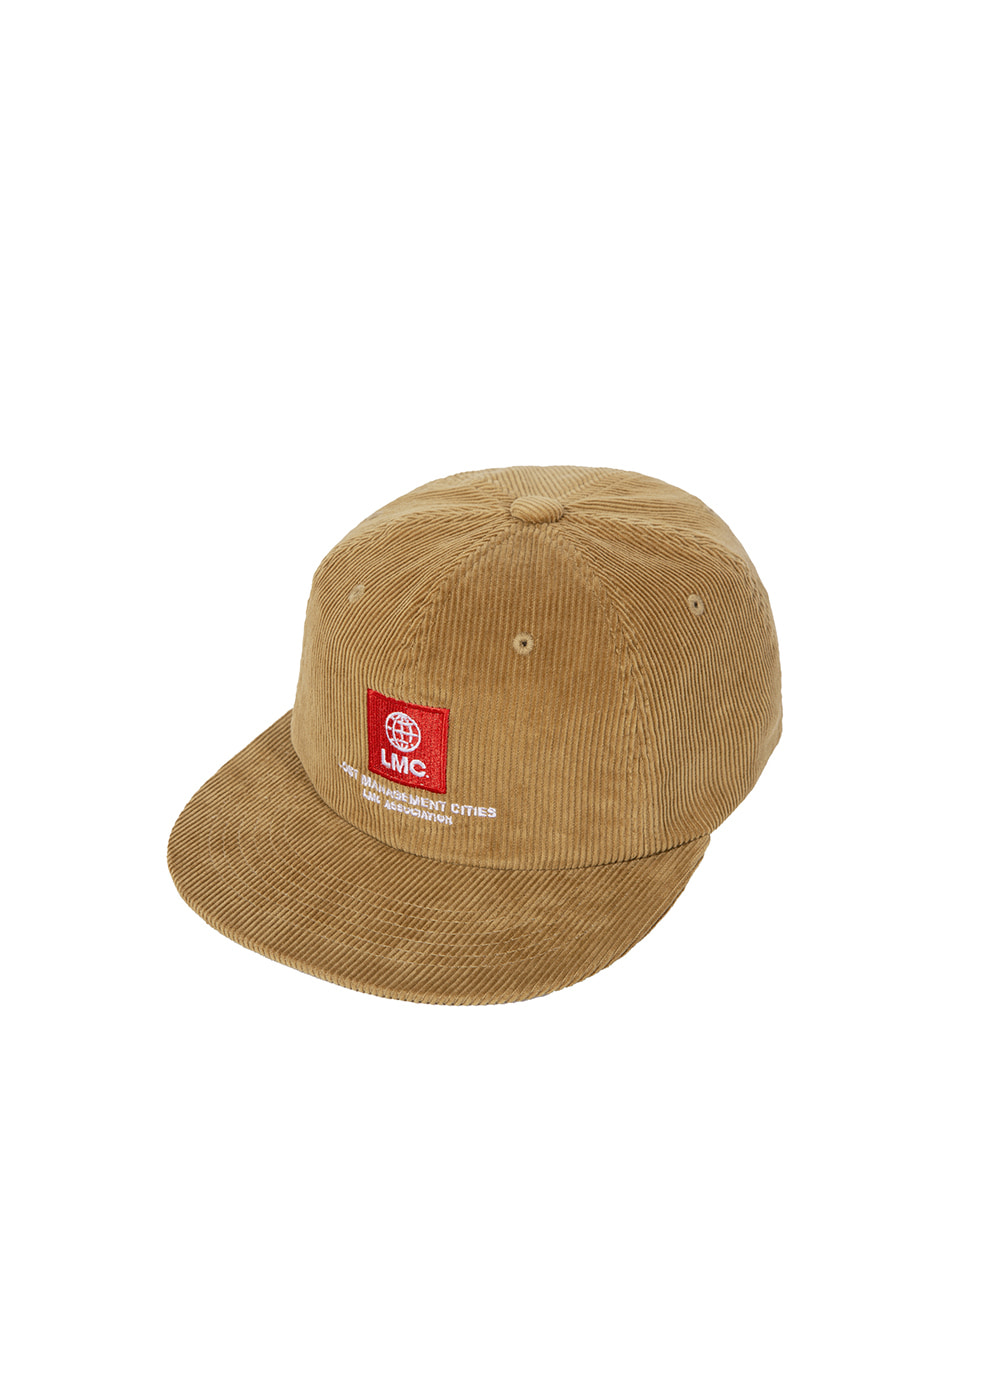 LMC GLOBE CORDUROY SKATER CAP yellow brown